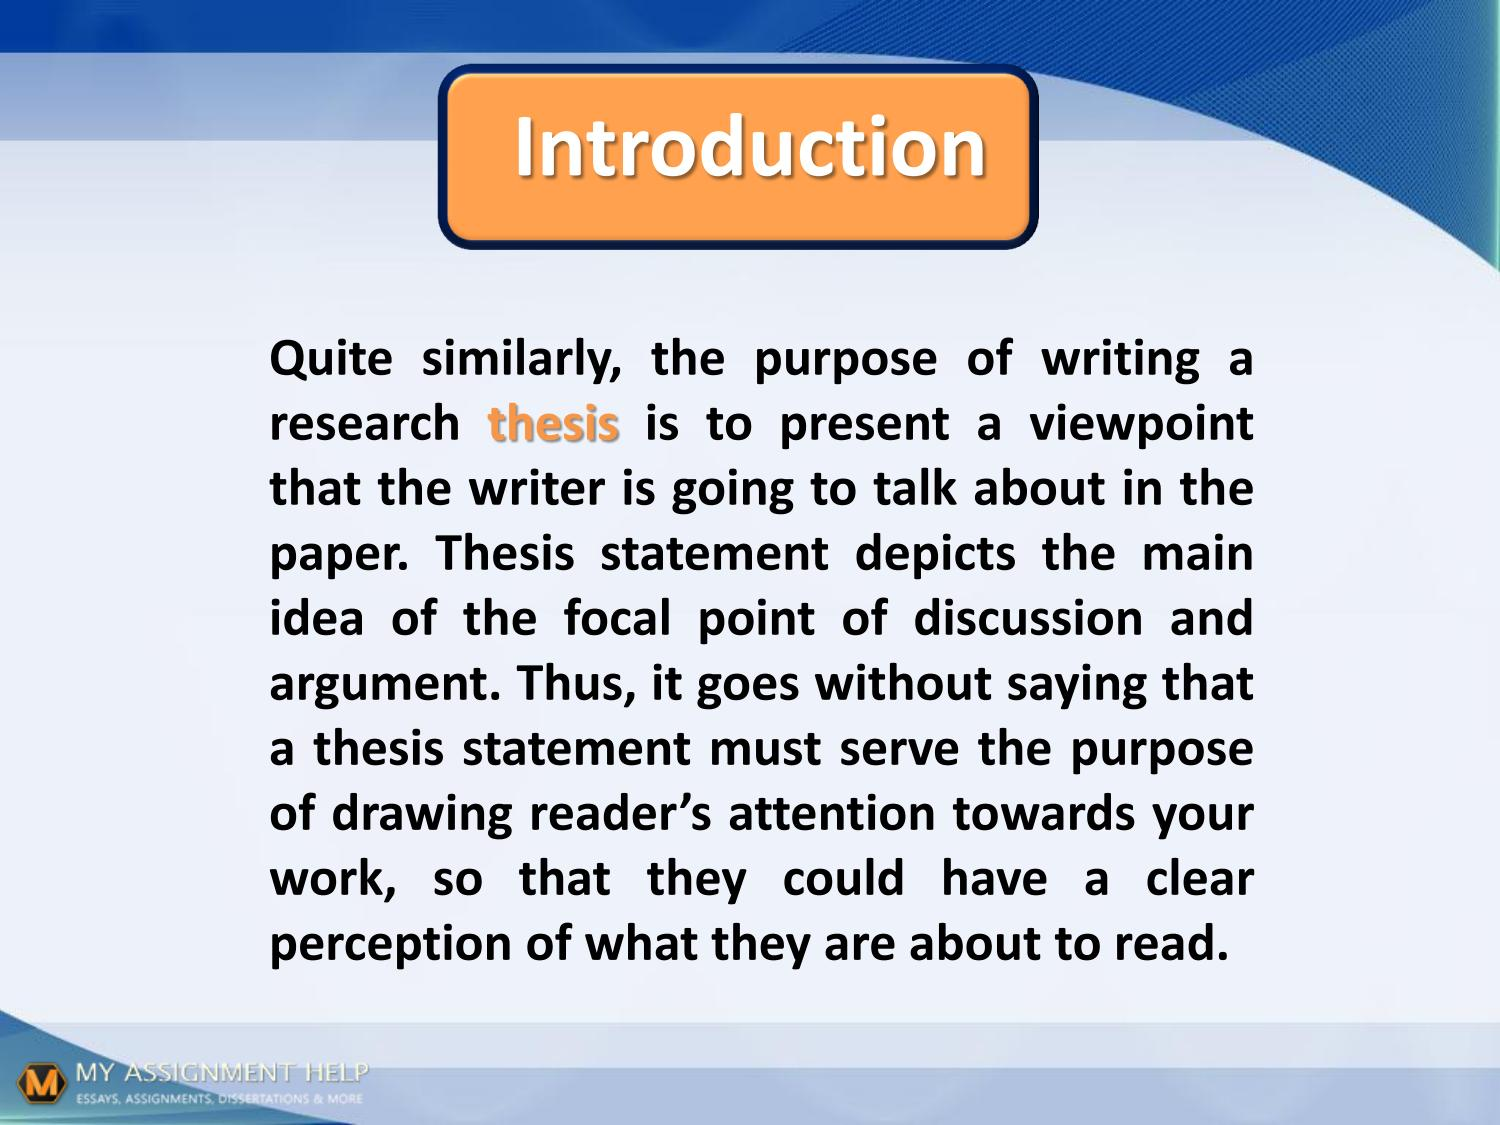 what is the main goal of a thesis statement